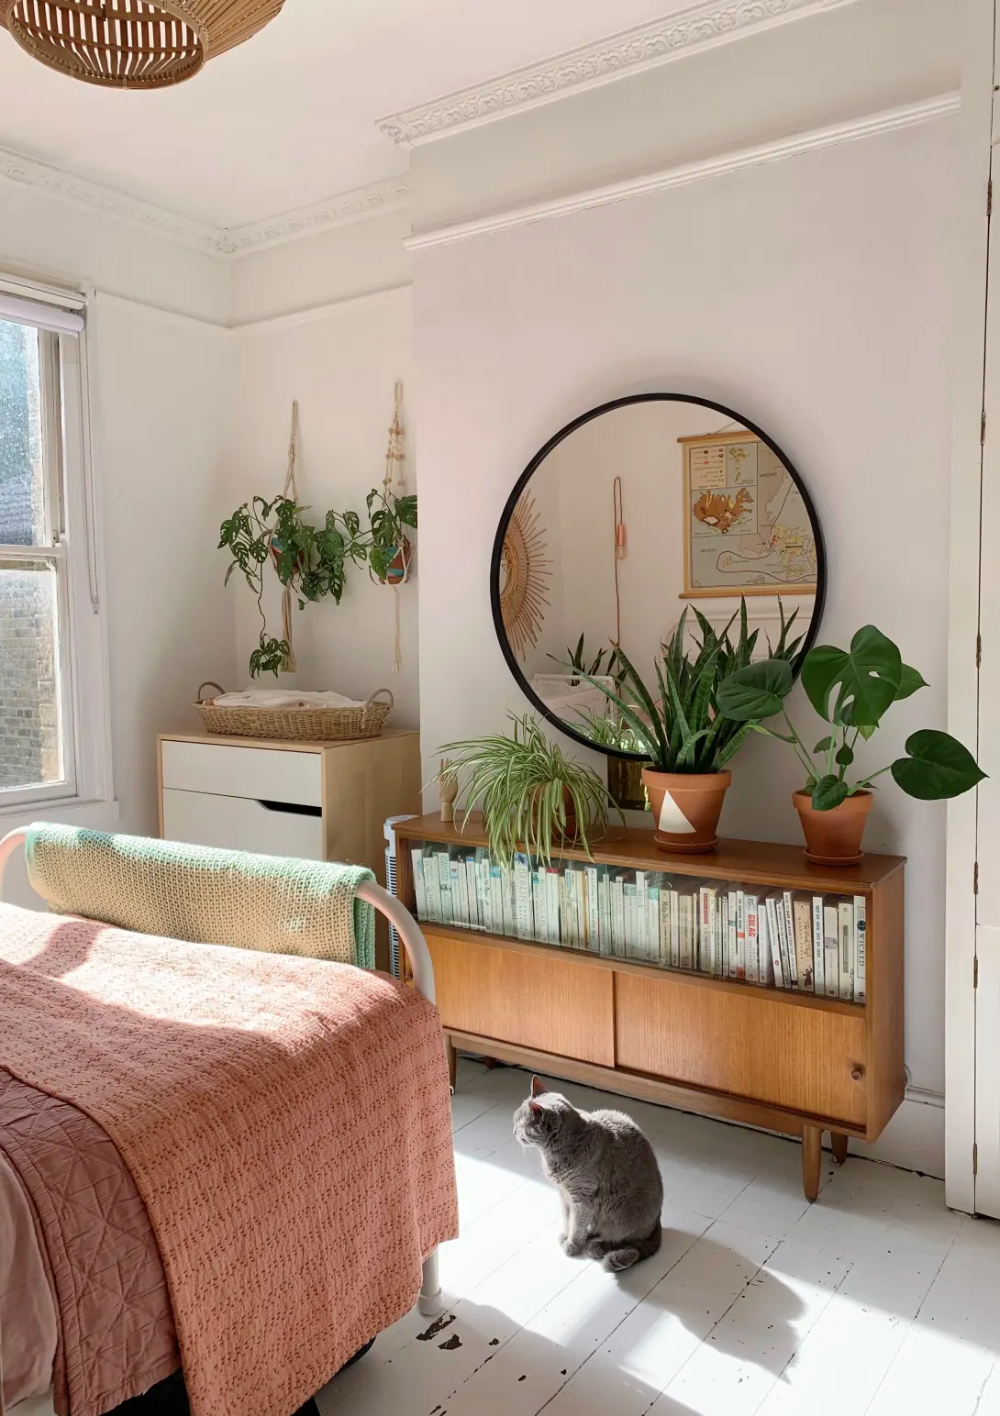 A Renovated London Flat Is Full of Light, Plants, and a Playful Spirit